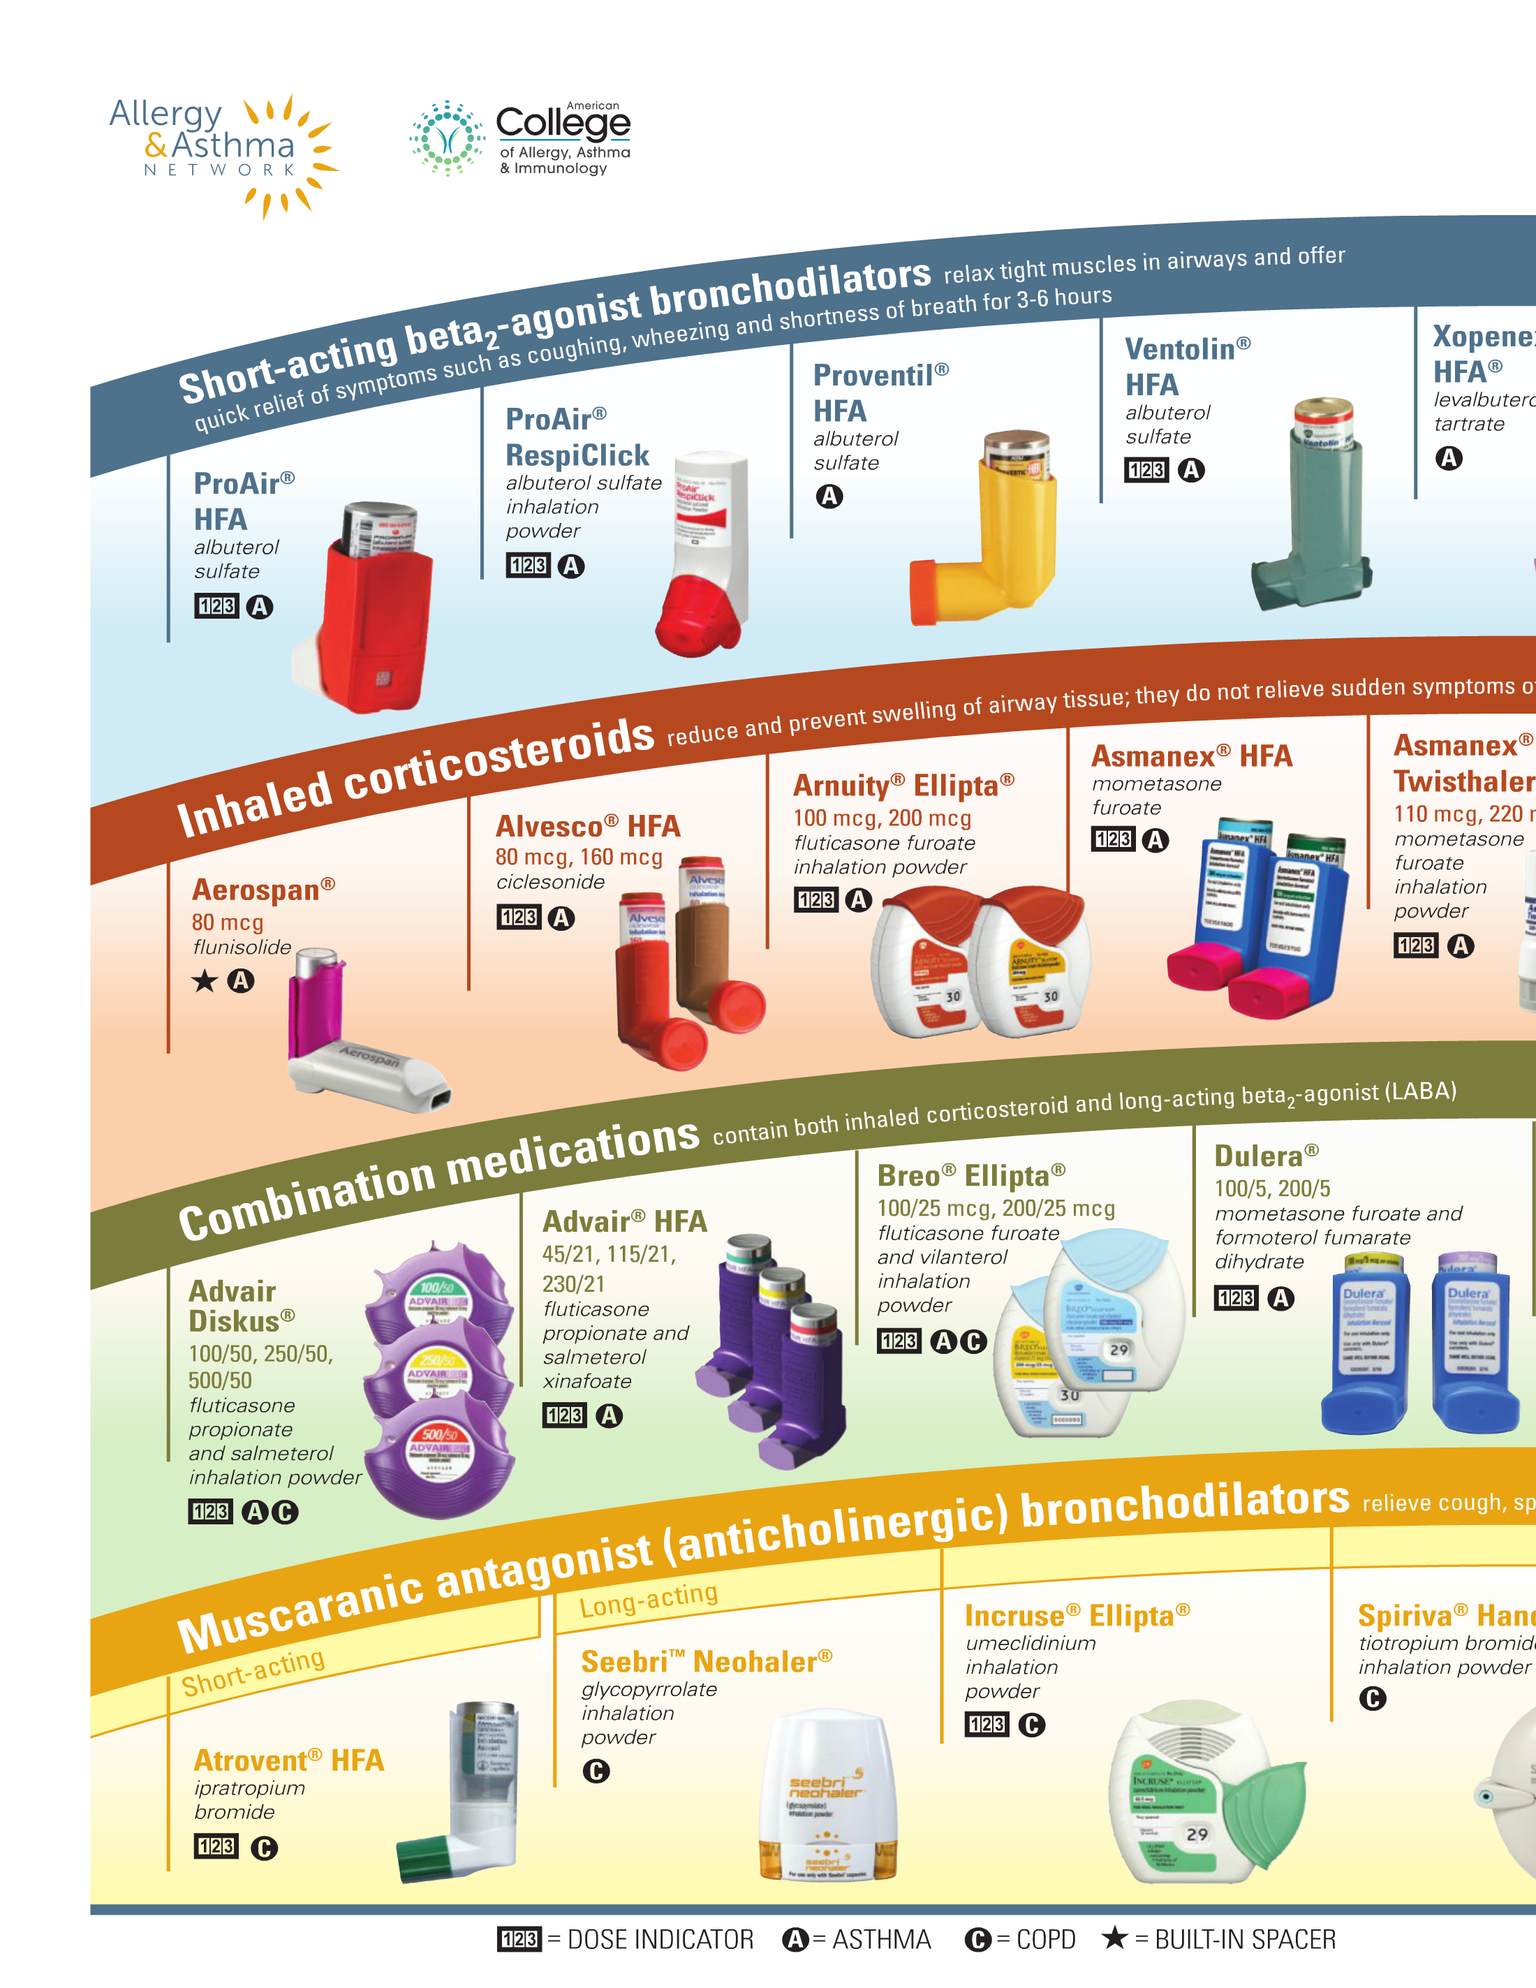 Respiratory Inhalers At A Glance Asthma Respiratory Inhalers At A Glance Asthma Asthmatreatment Asthmatreatmentallergie Asthma Treatment Inhaler Asthma